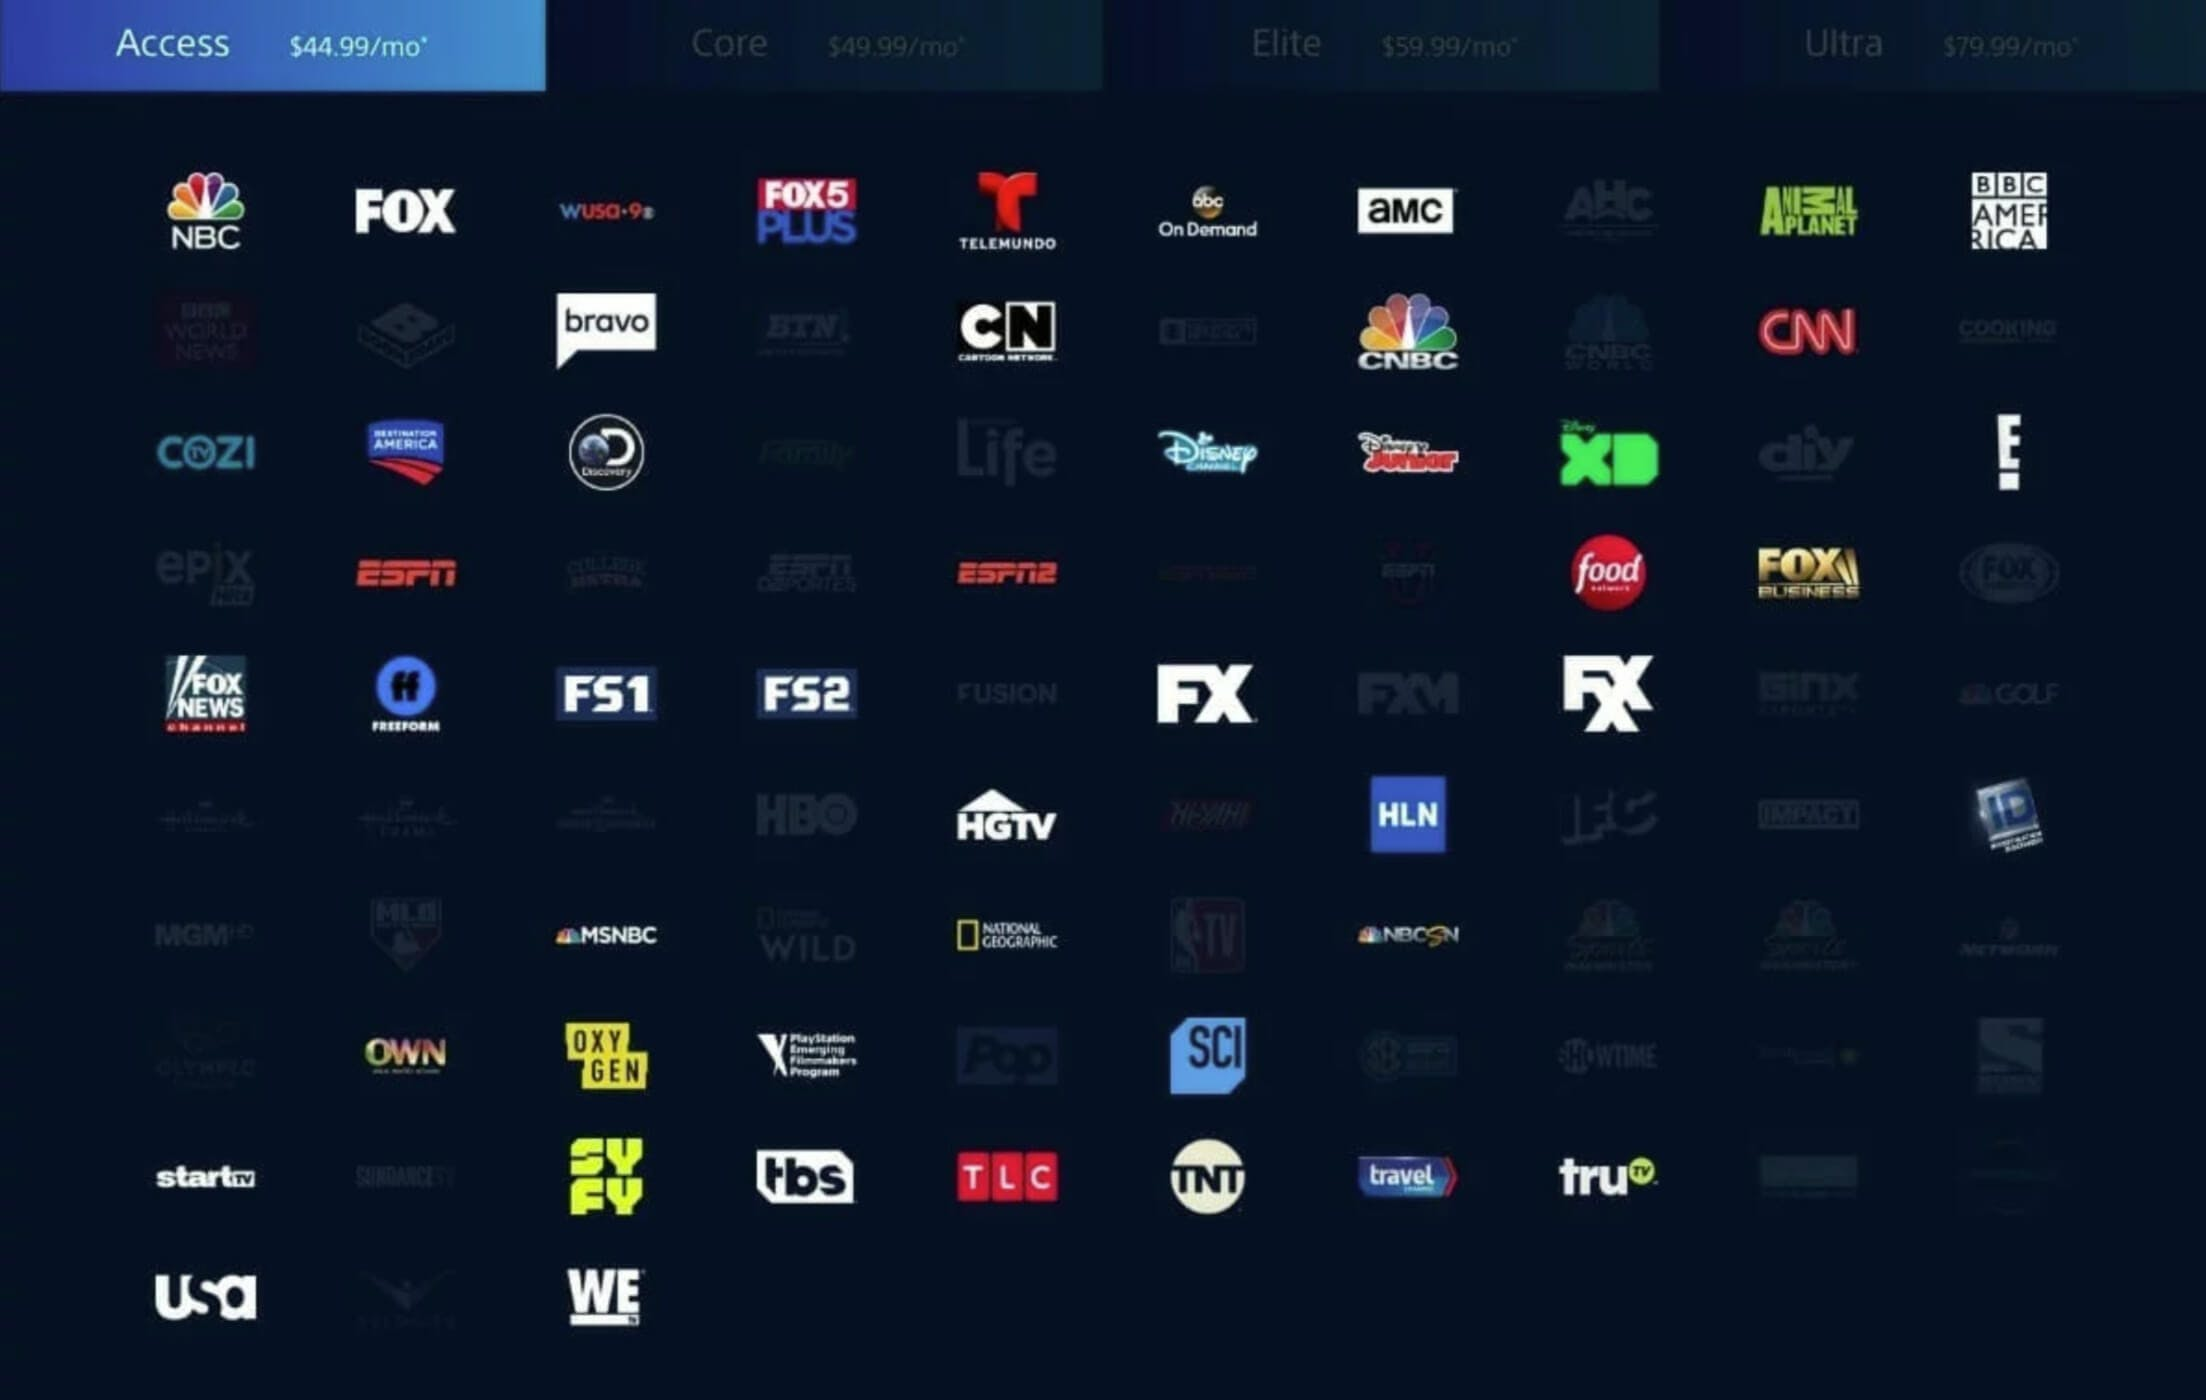 raiders texans playstation vue streaming nfl afc